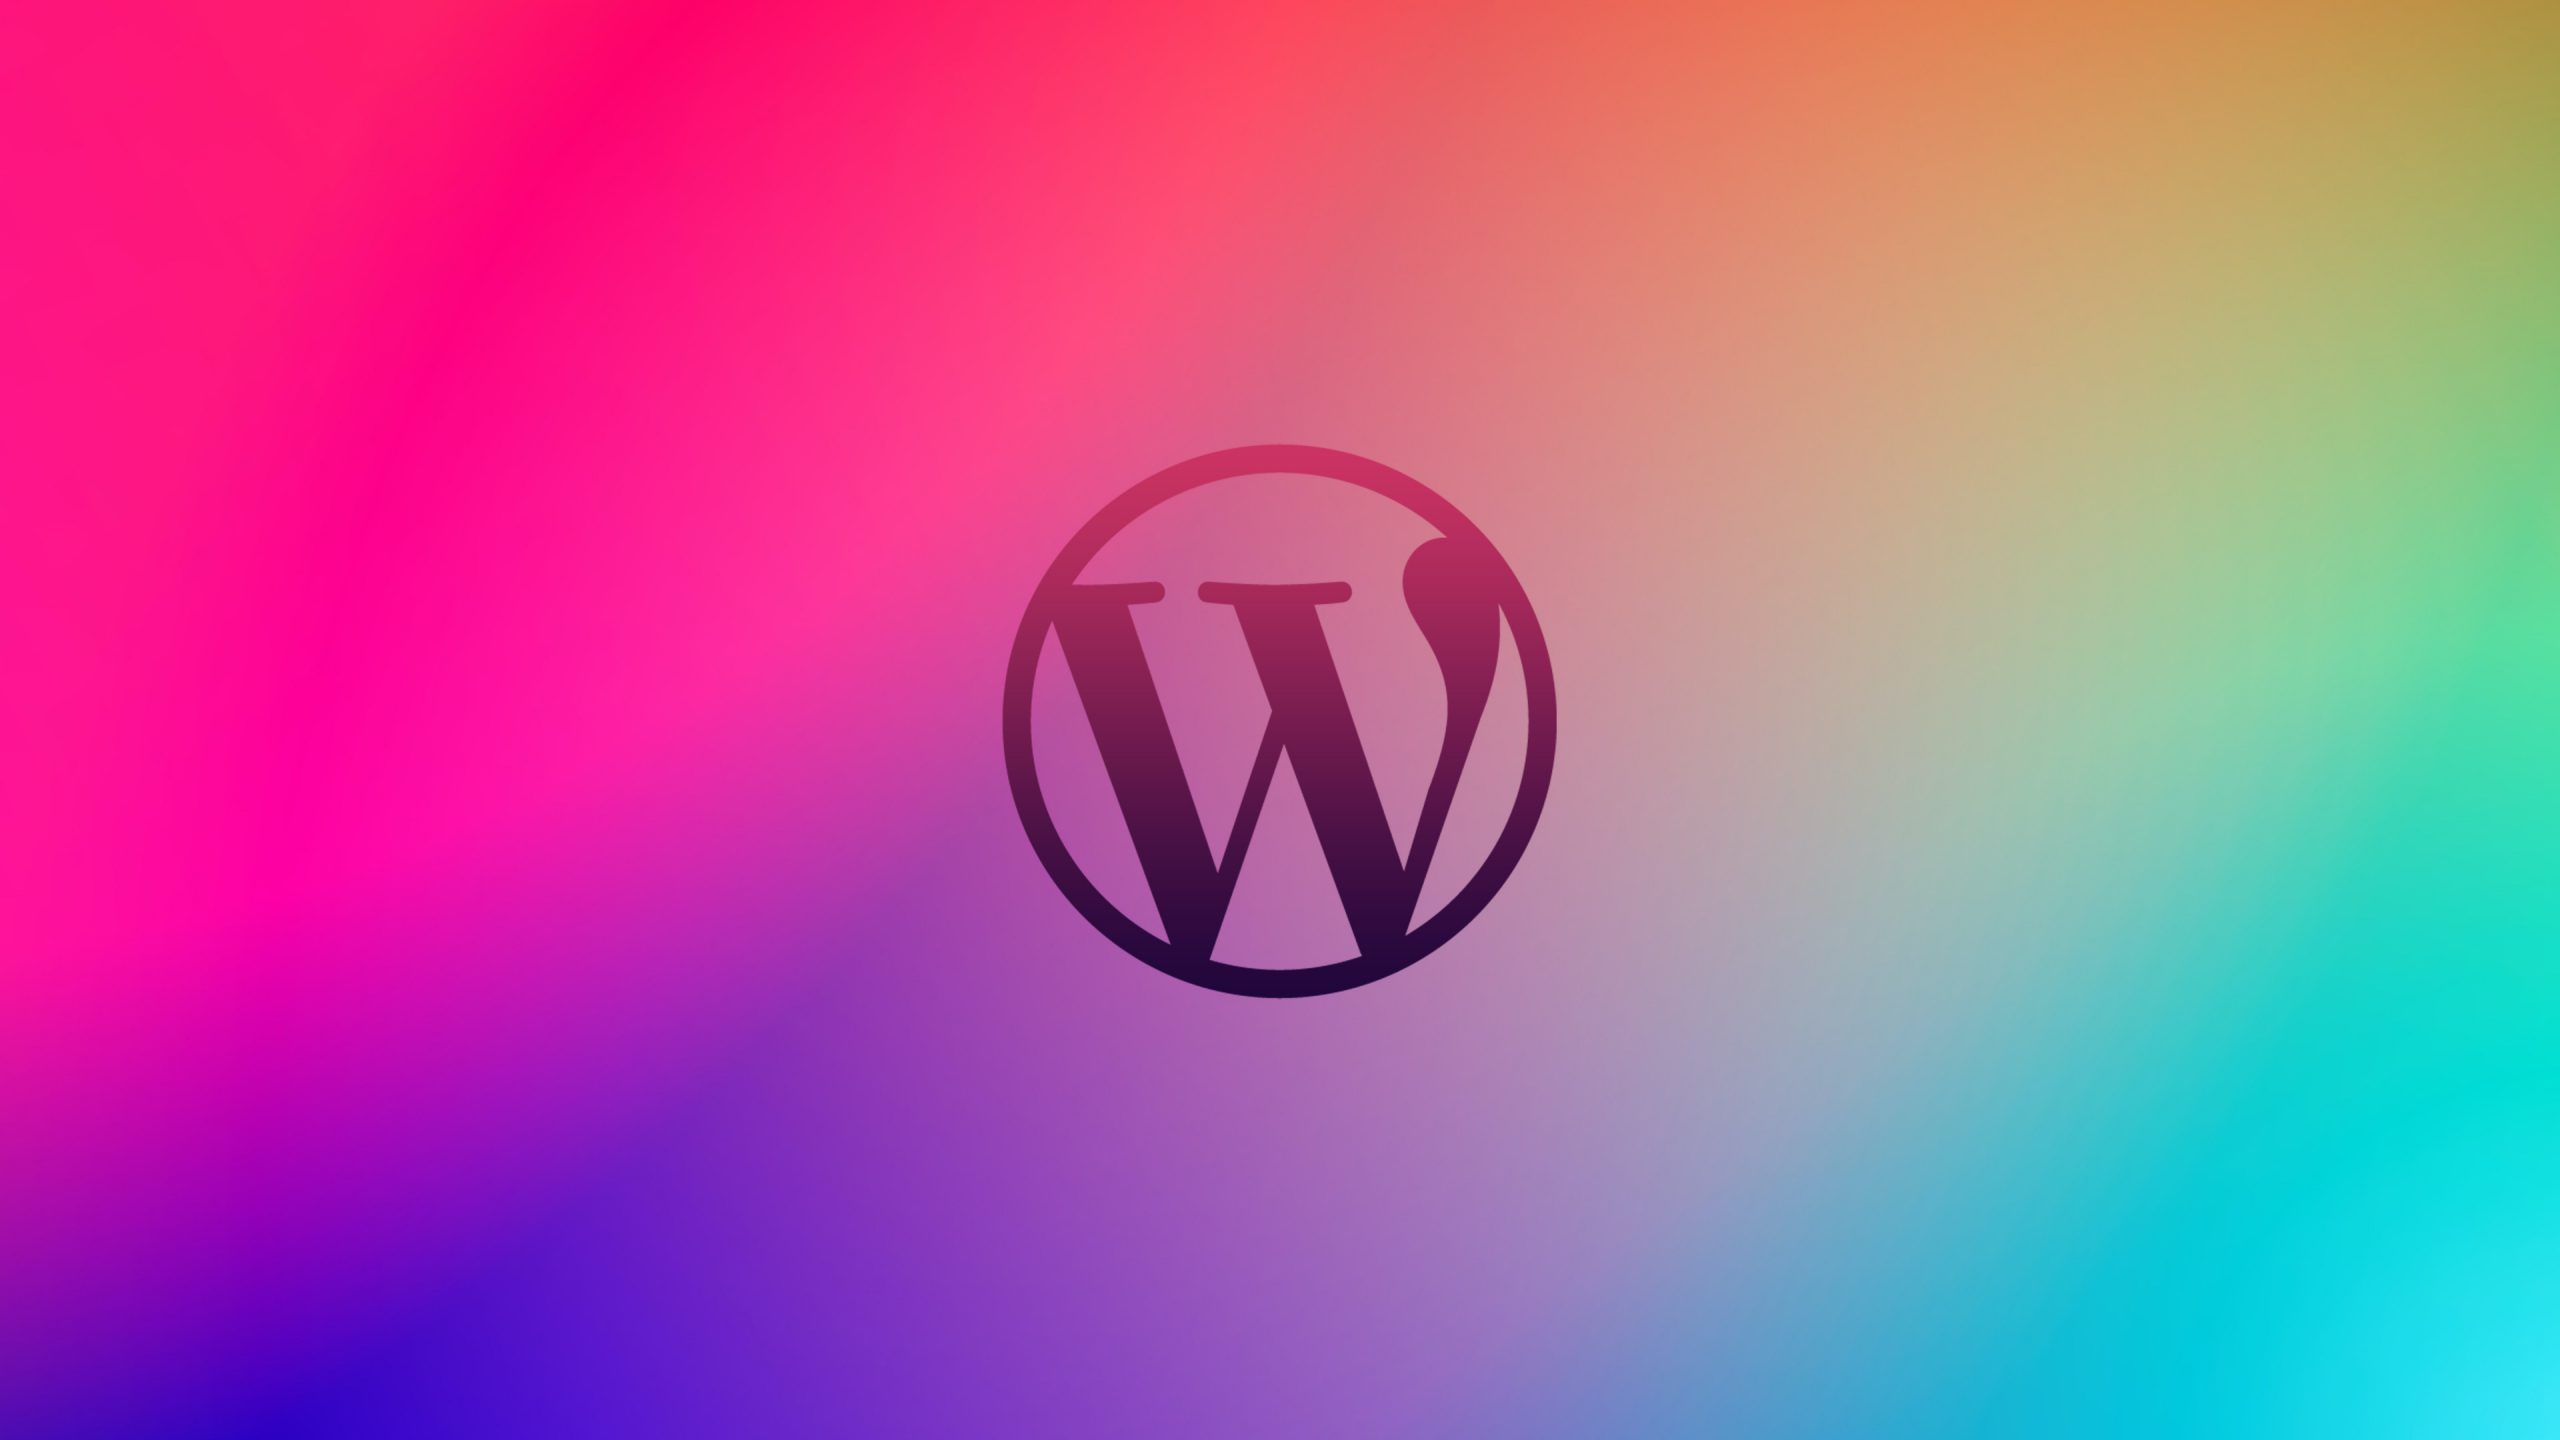 wordpress wallpaper colorful gradient collection 2 scaled